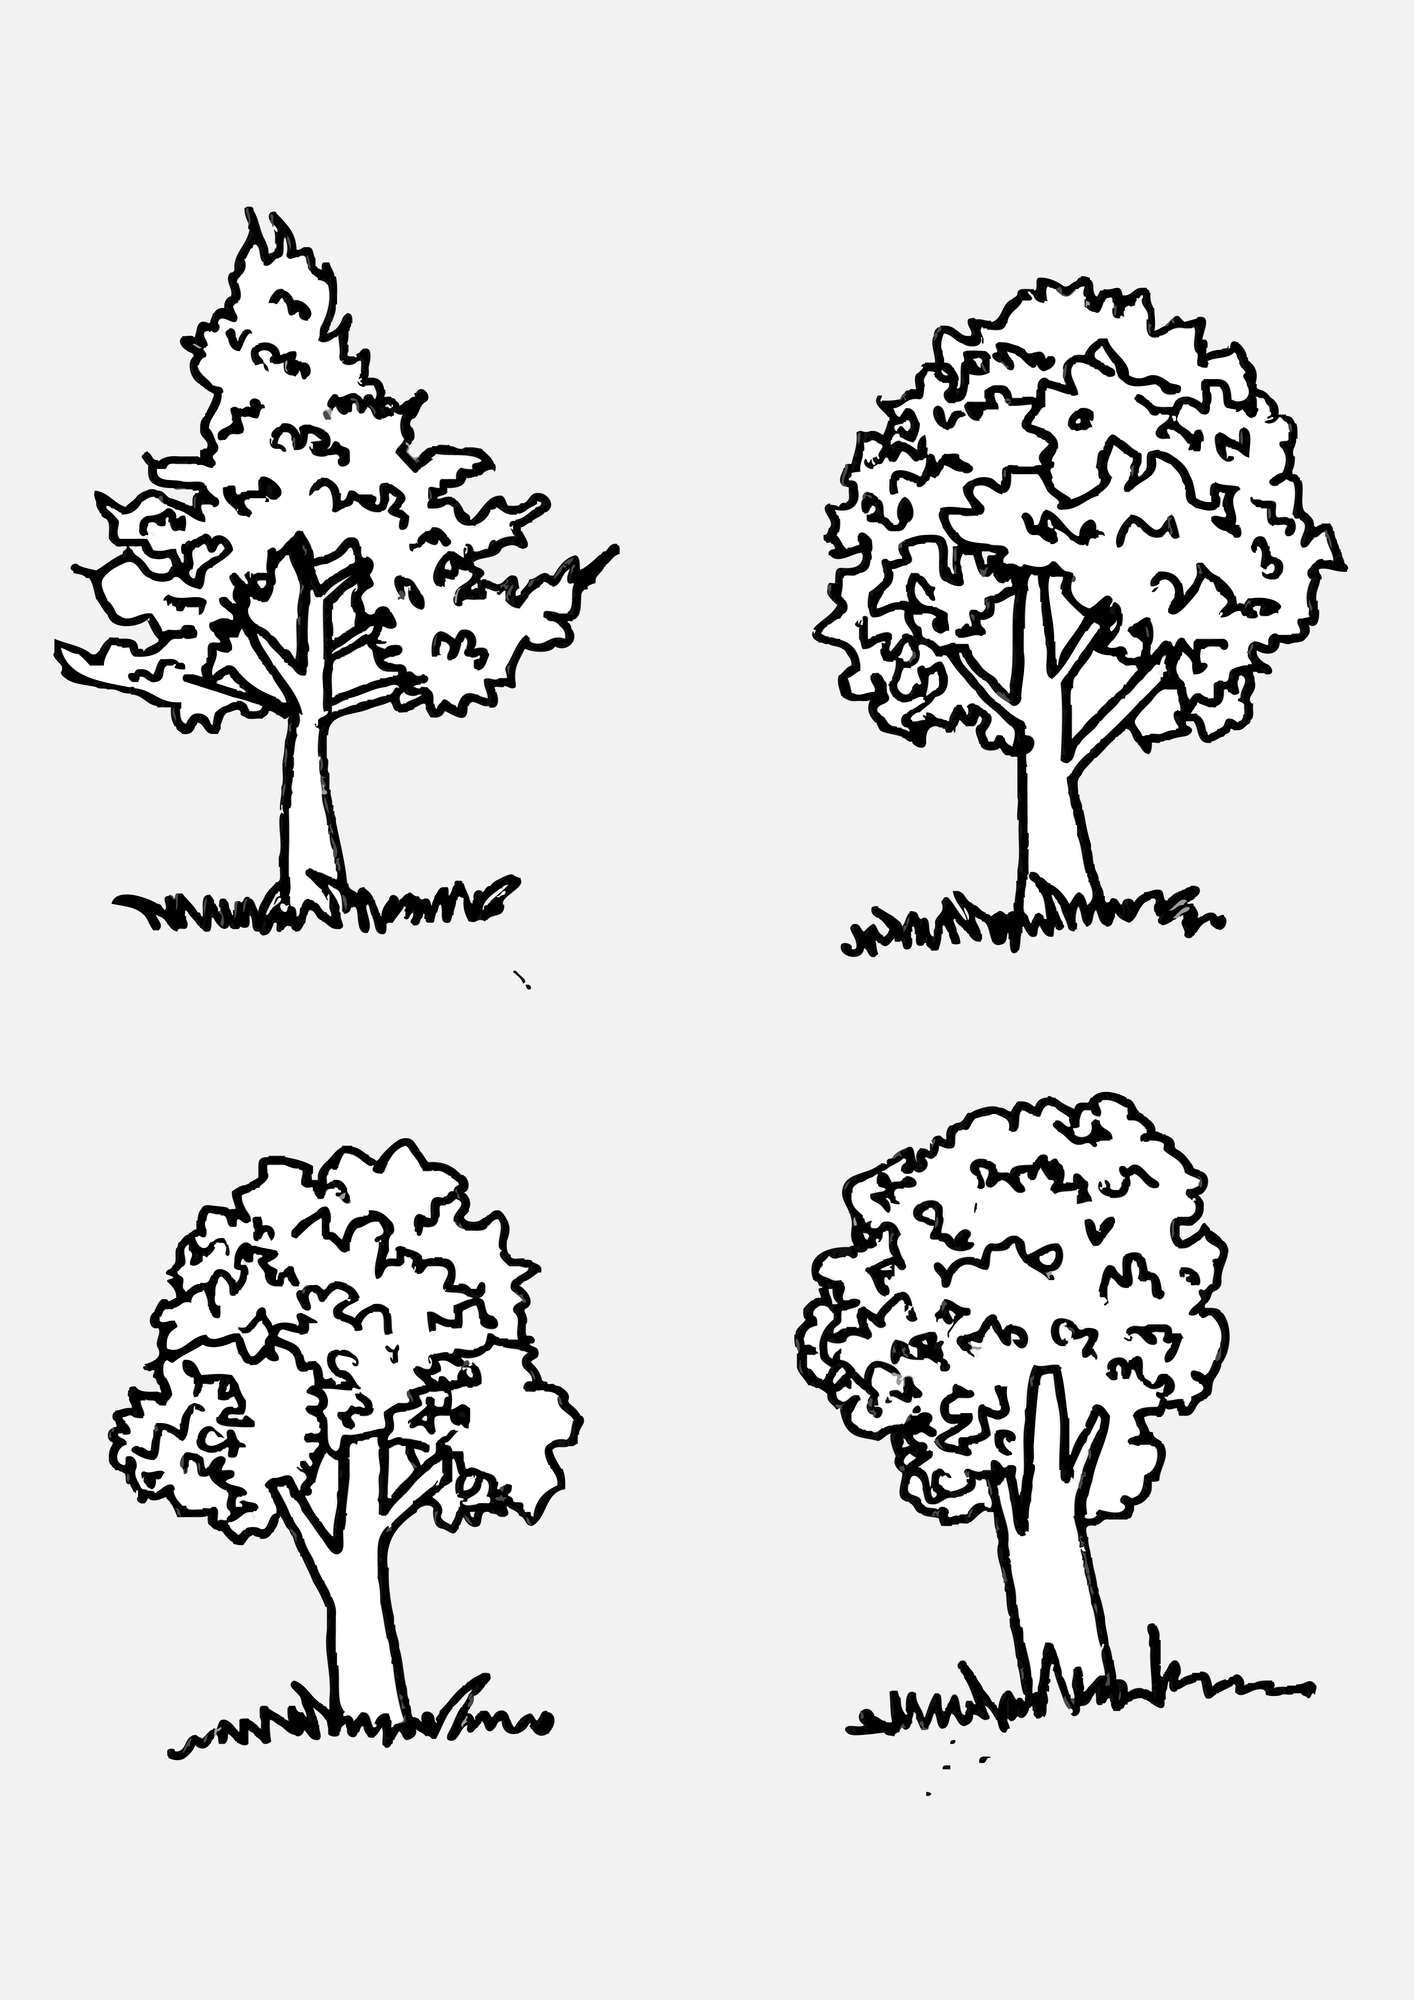 Set of trees with leaves